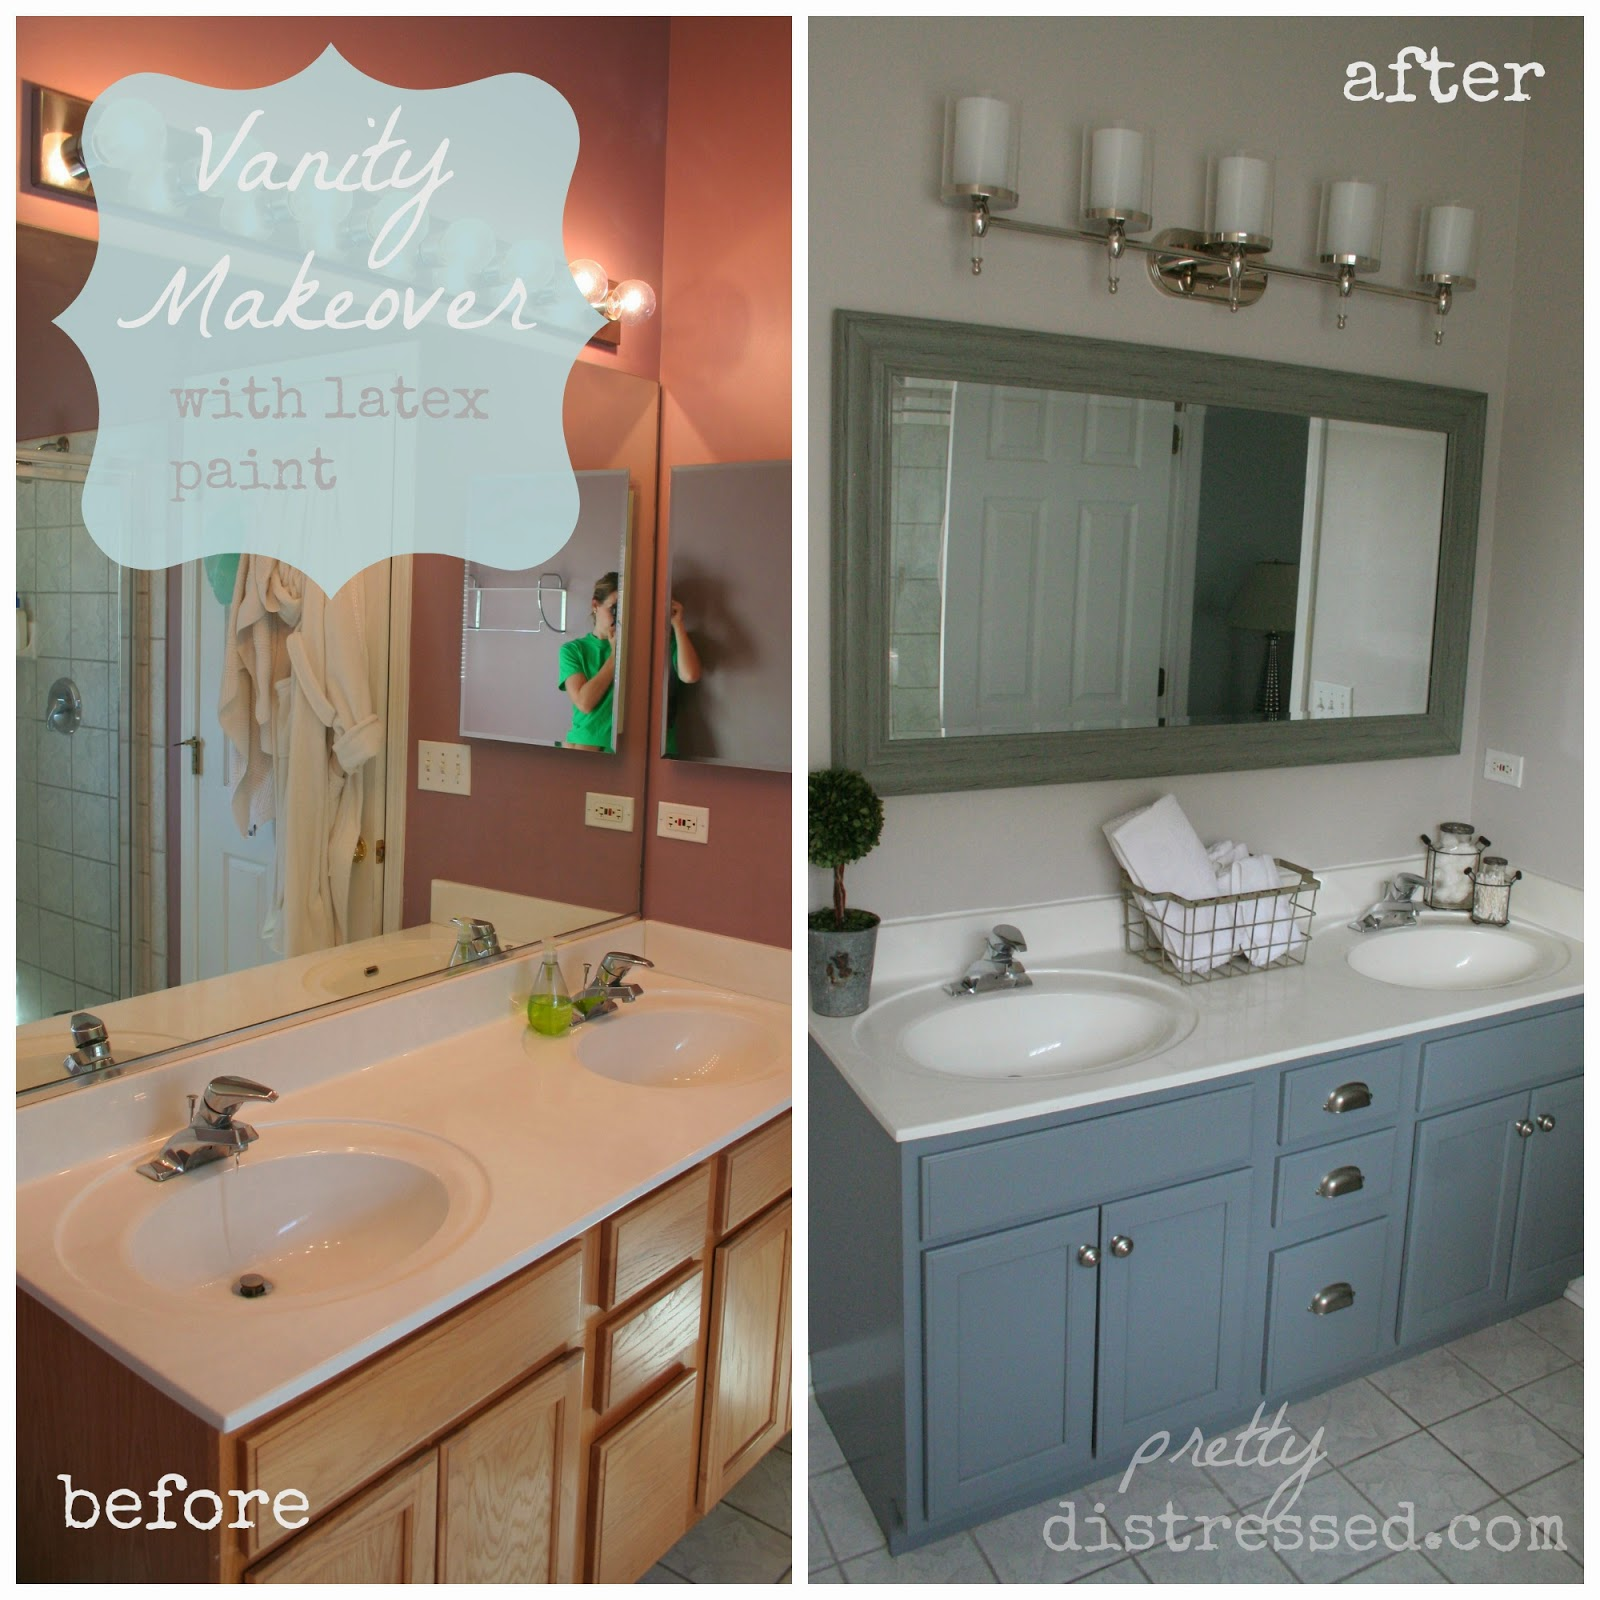 Pretty distressed bathroom vanity makeover with latex paint for Bathroom cabinet makeover ideas